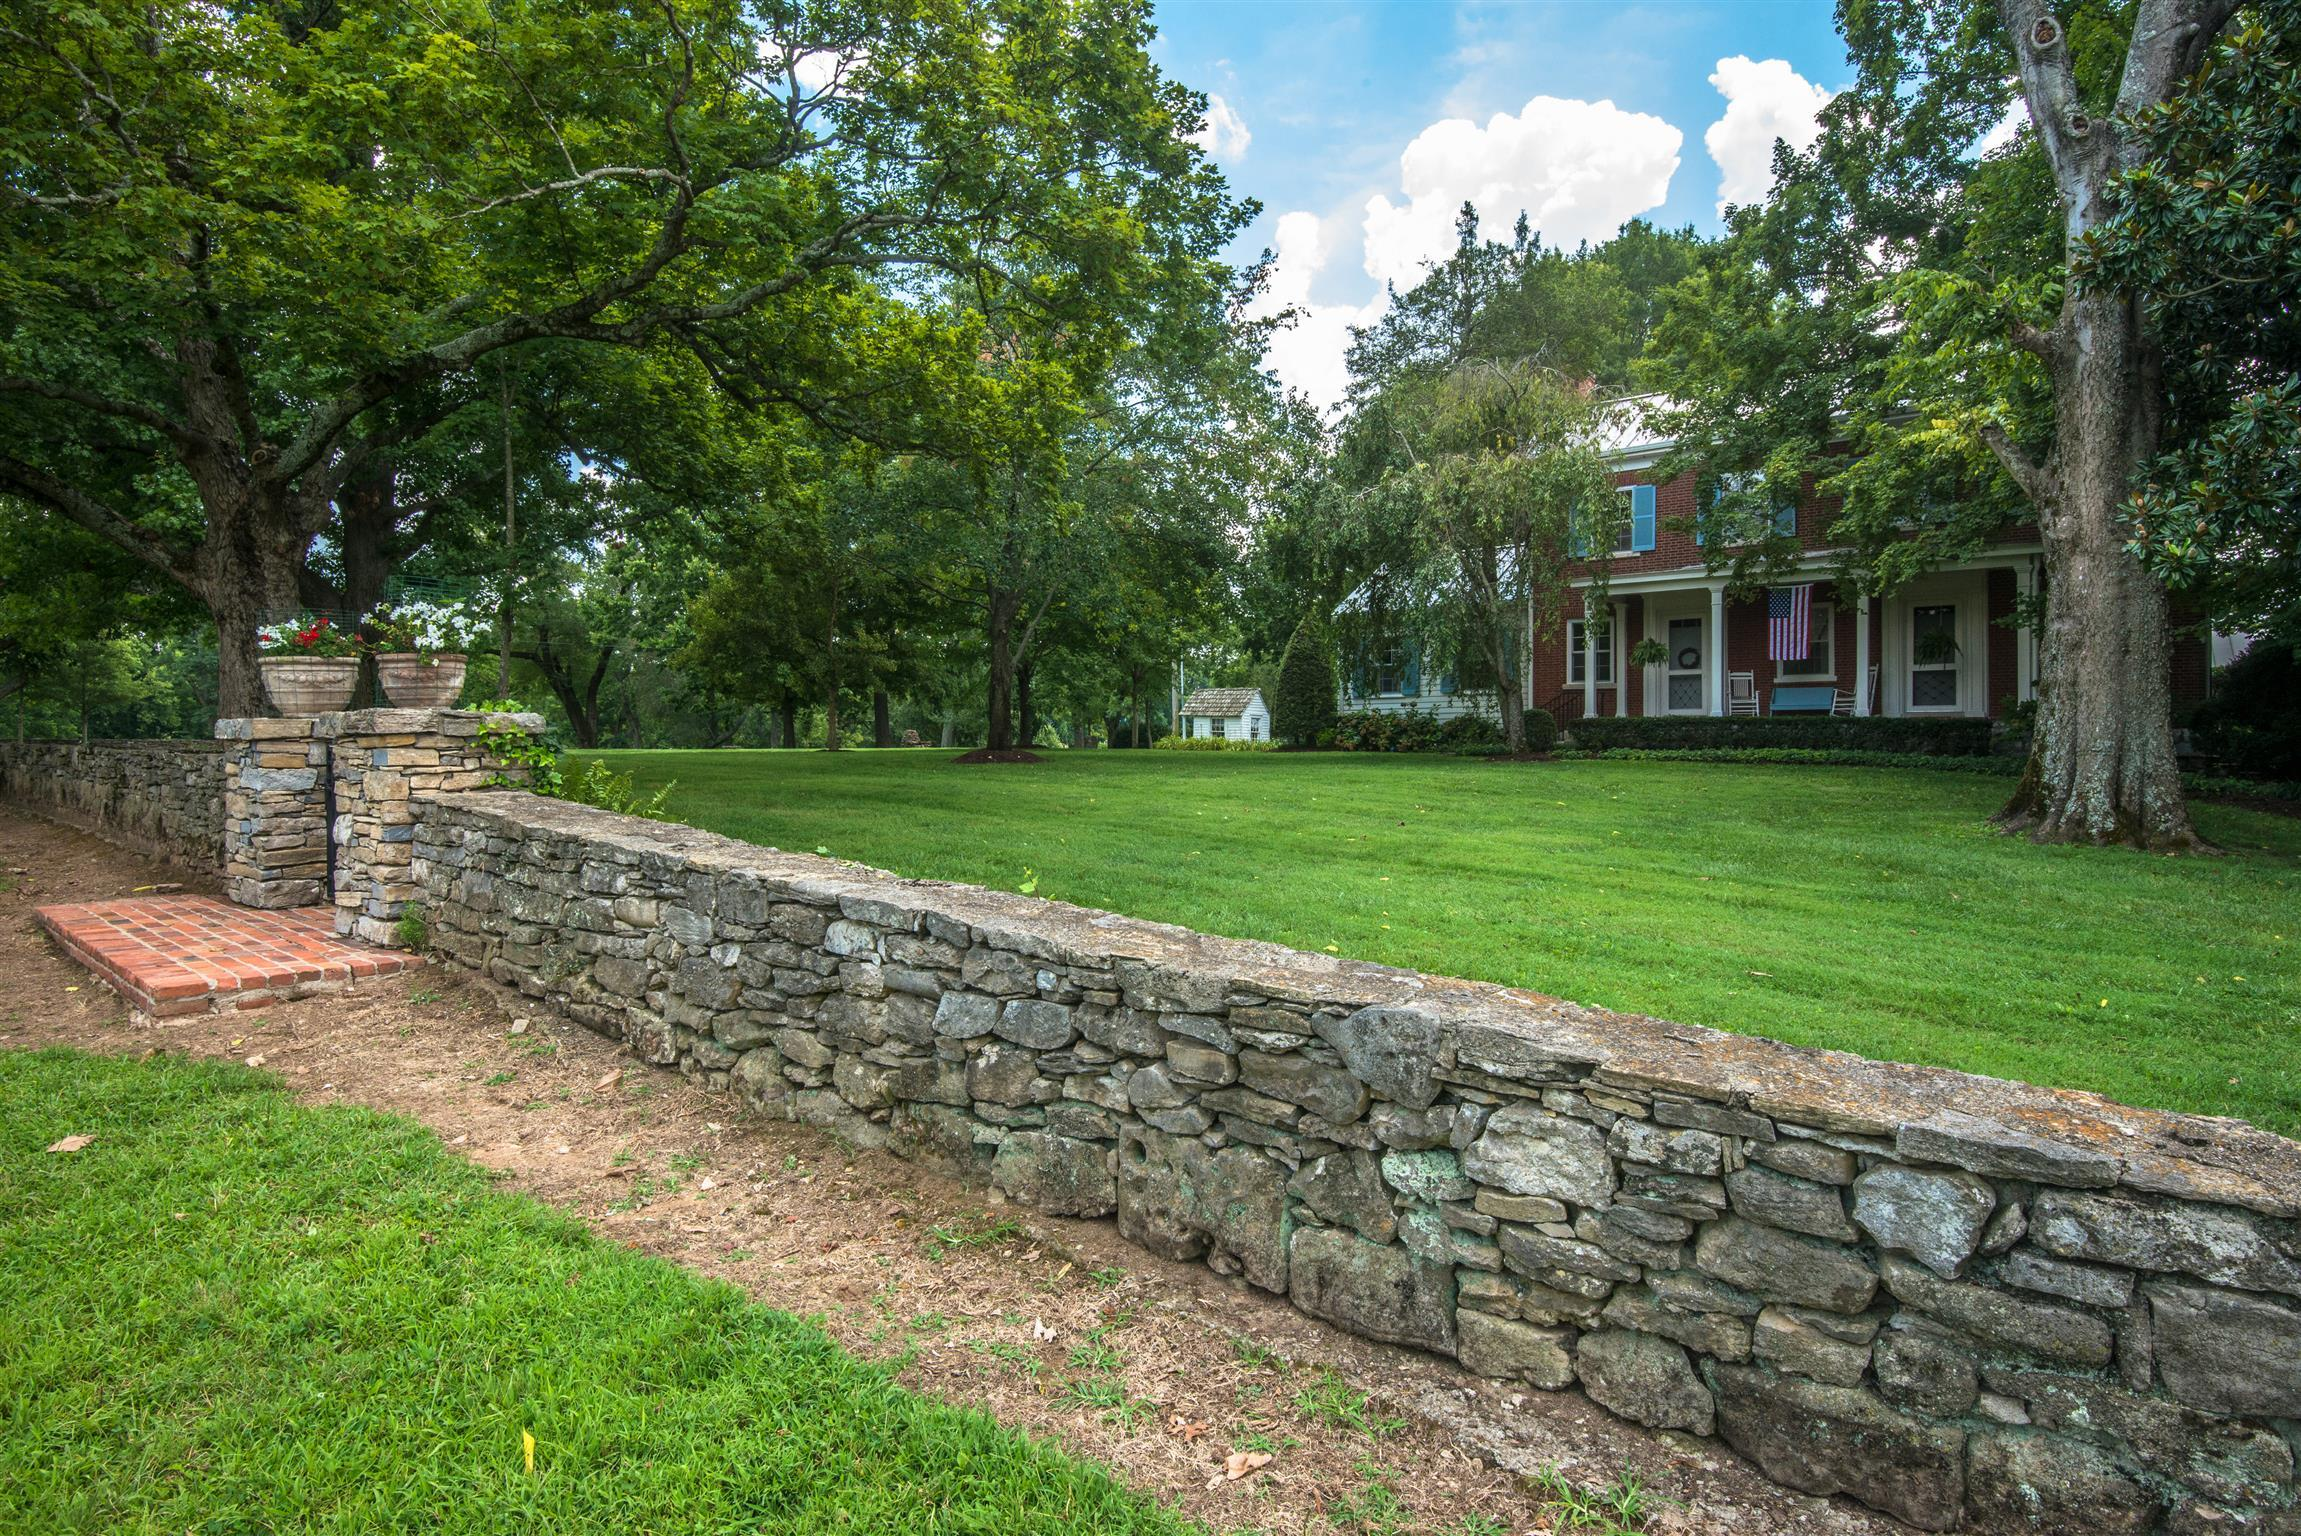 9135 Old Smyrna Rd, Brentwood, TN 37027 - Brentwood, TN real estate listing